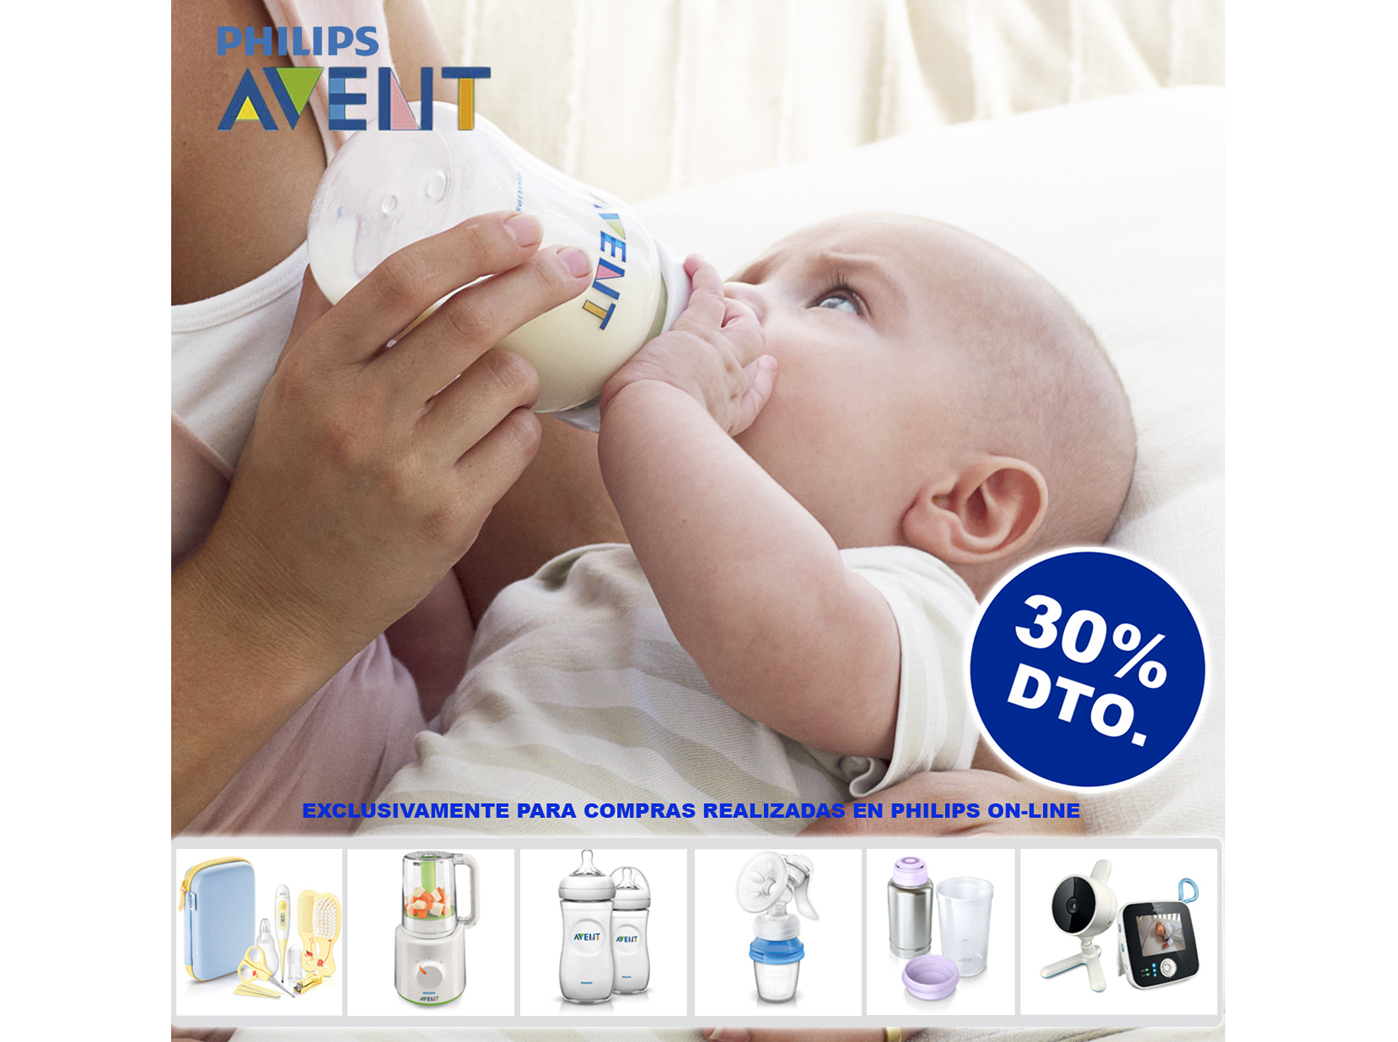 30% dto. Web PHILIPS AVENT